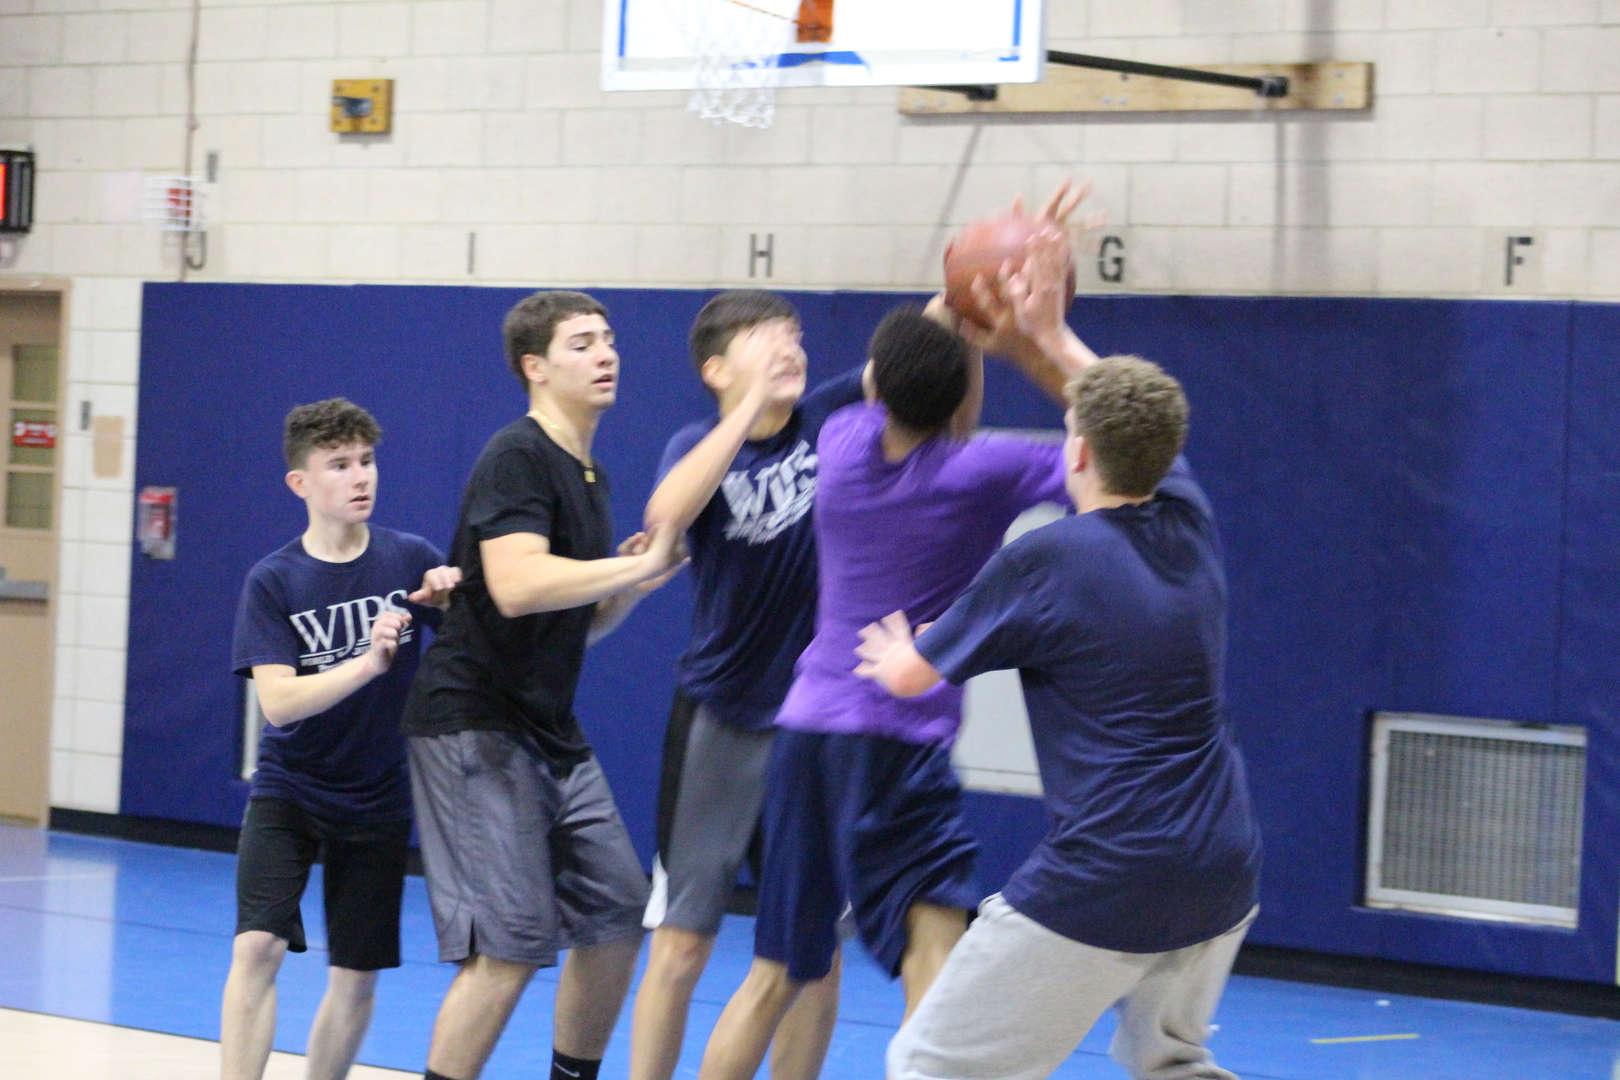 group of students running up to basketball hoop